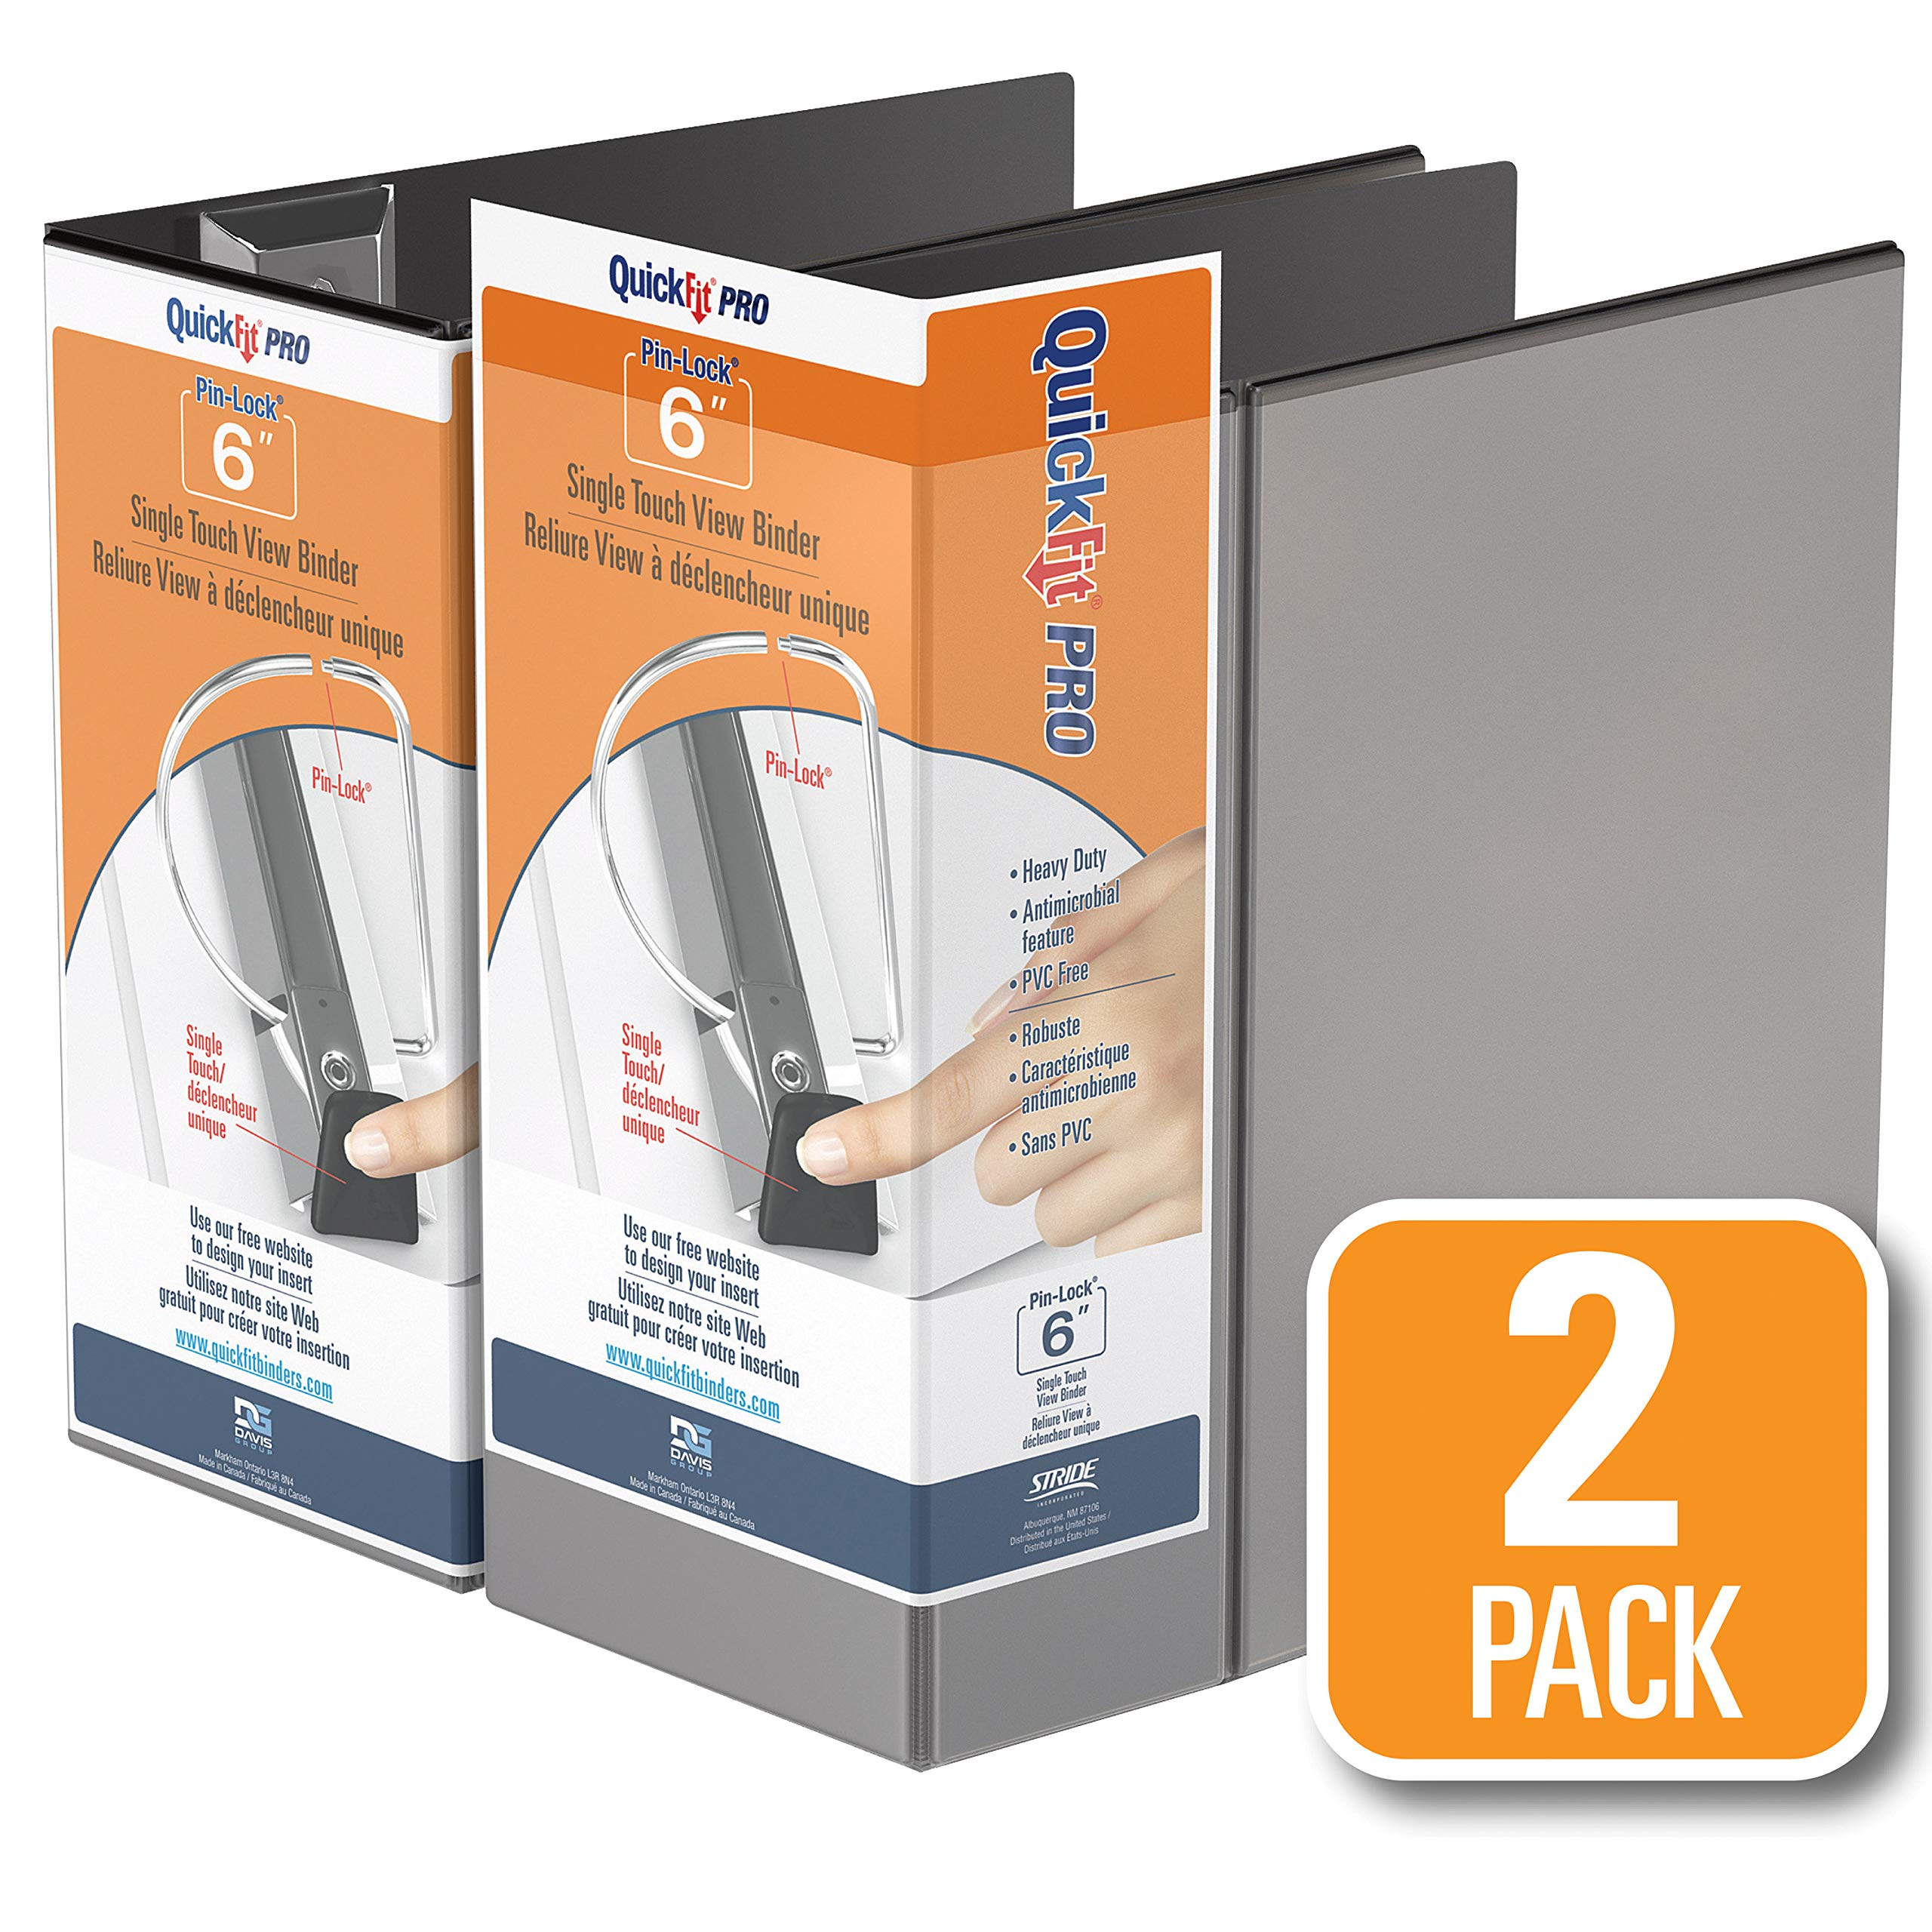 QuickFit Pro Heavy Duty Single Touch View Binder, 6 Inch, Locking D Ring, Black, 2 Pack (90081-02) by QUICKFIT